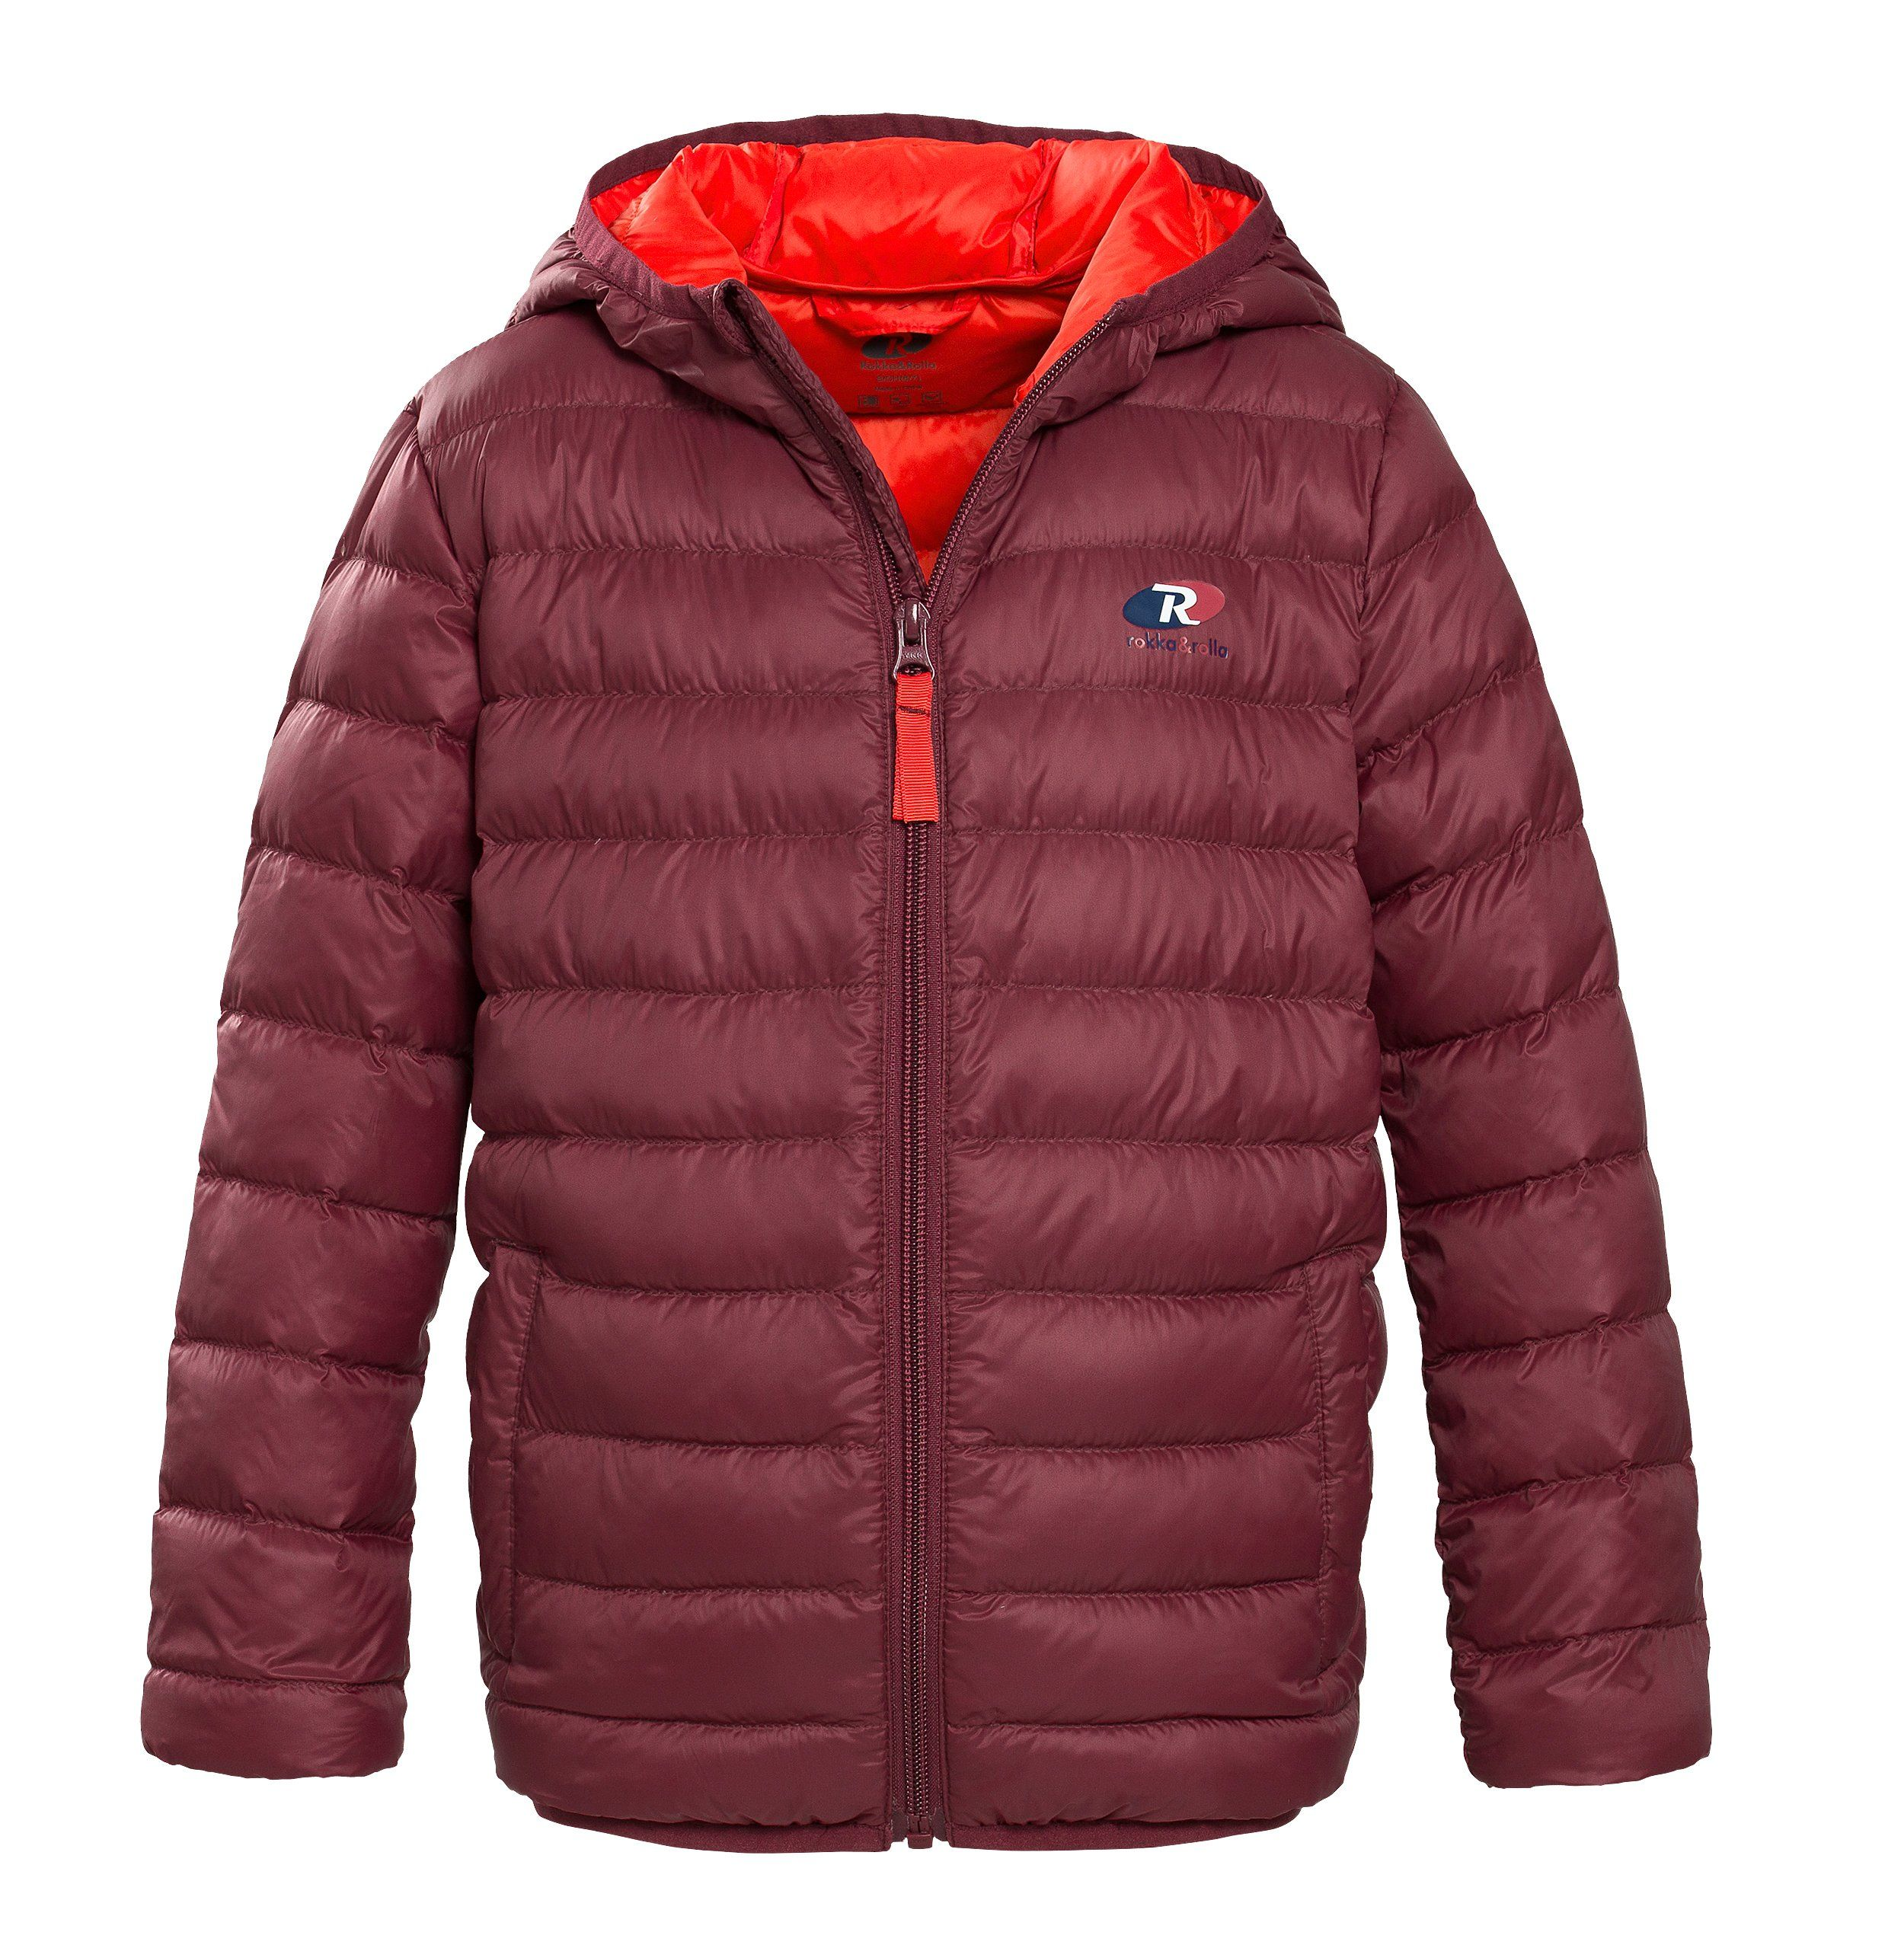 Rokka Rolla Boys Ultra Lightweight Hooded Packable Puffer Down Jacket Extra Warmth Qulited Hooded Down Jacket Featuring Standin Down Jacket Jackets Rolla [ 2558 x 2500 Pixel ]